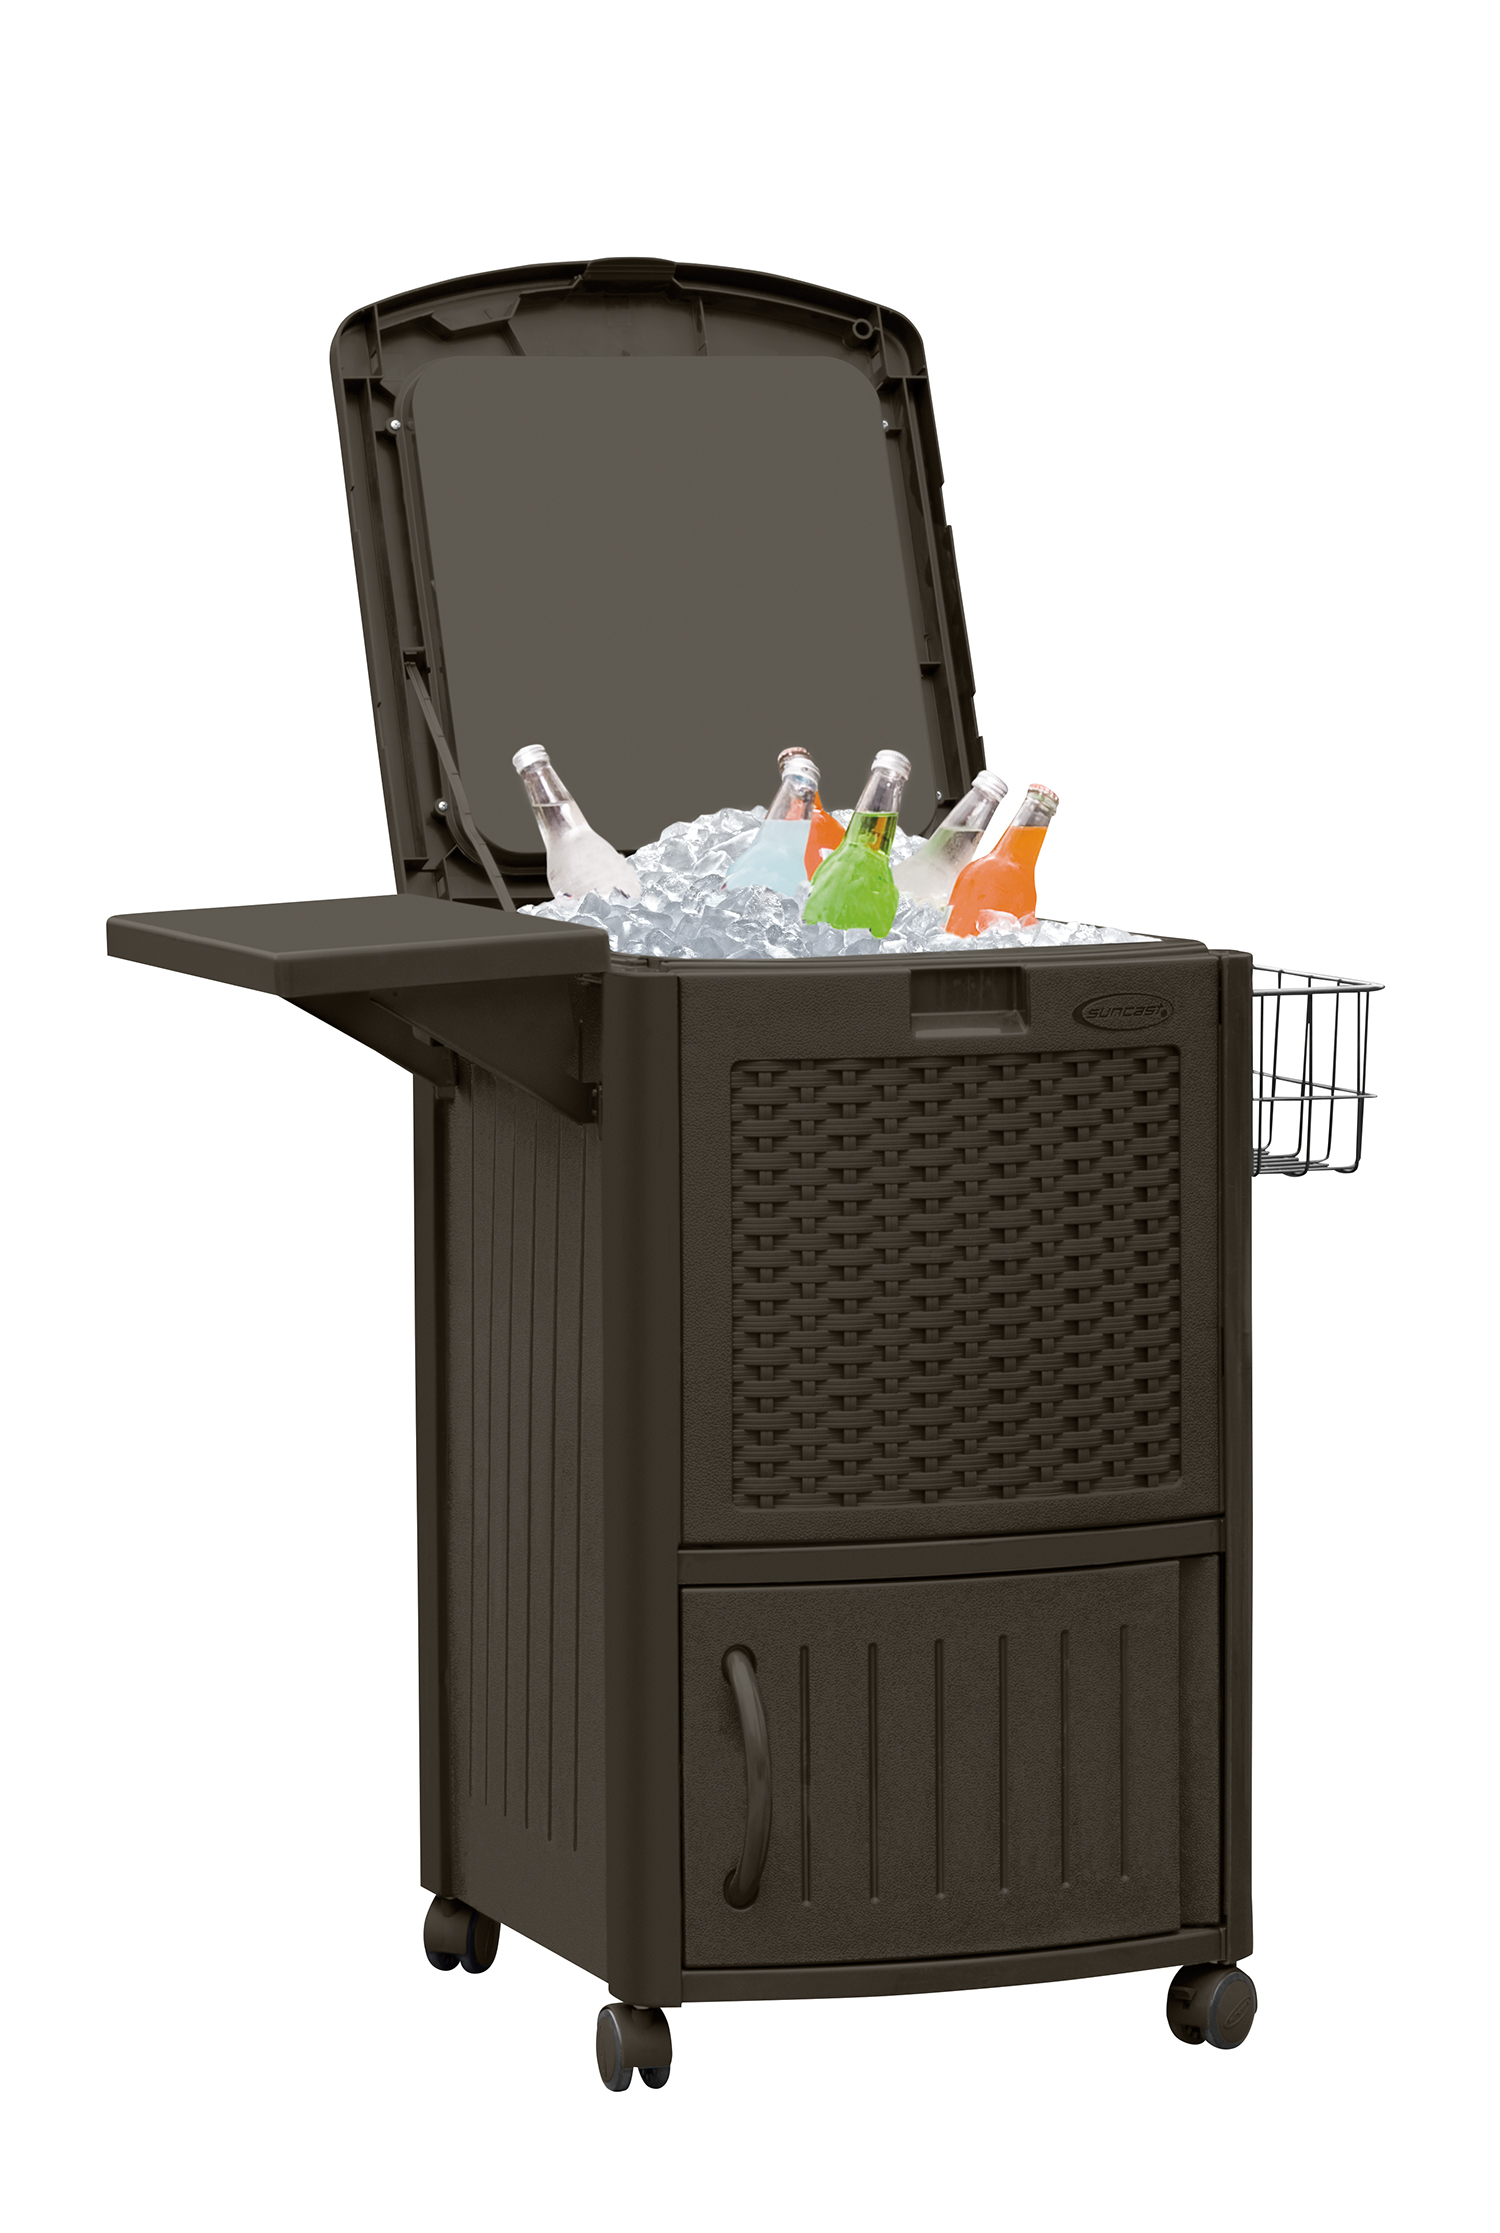 Resin Wicker Cooler with Cabinet